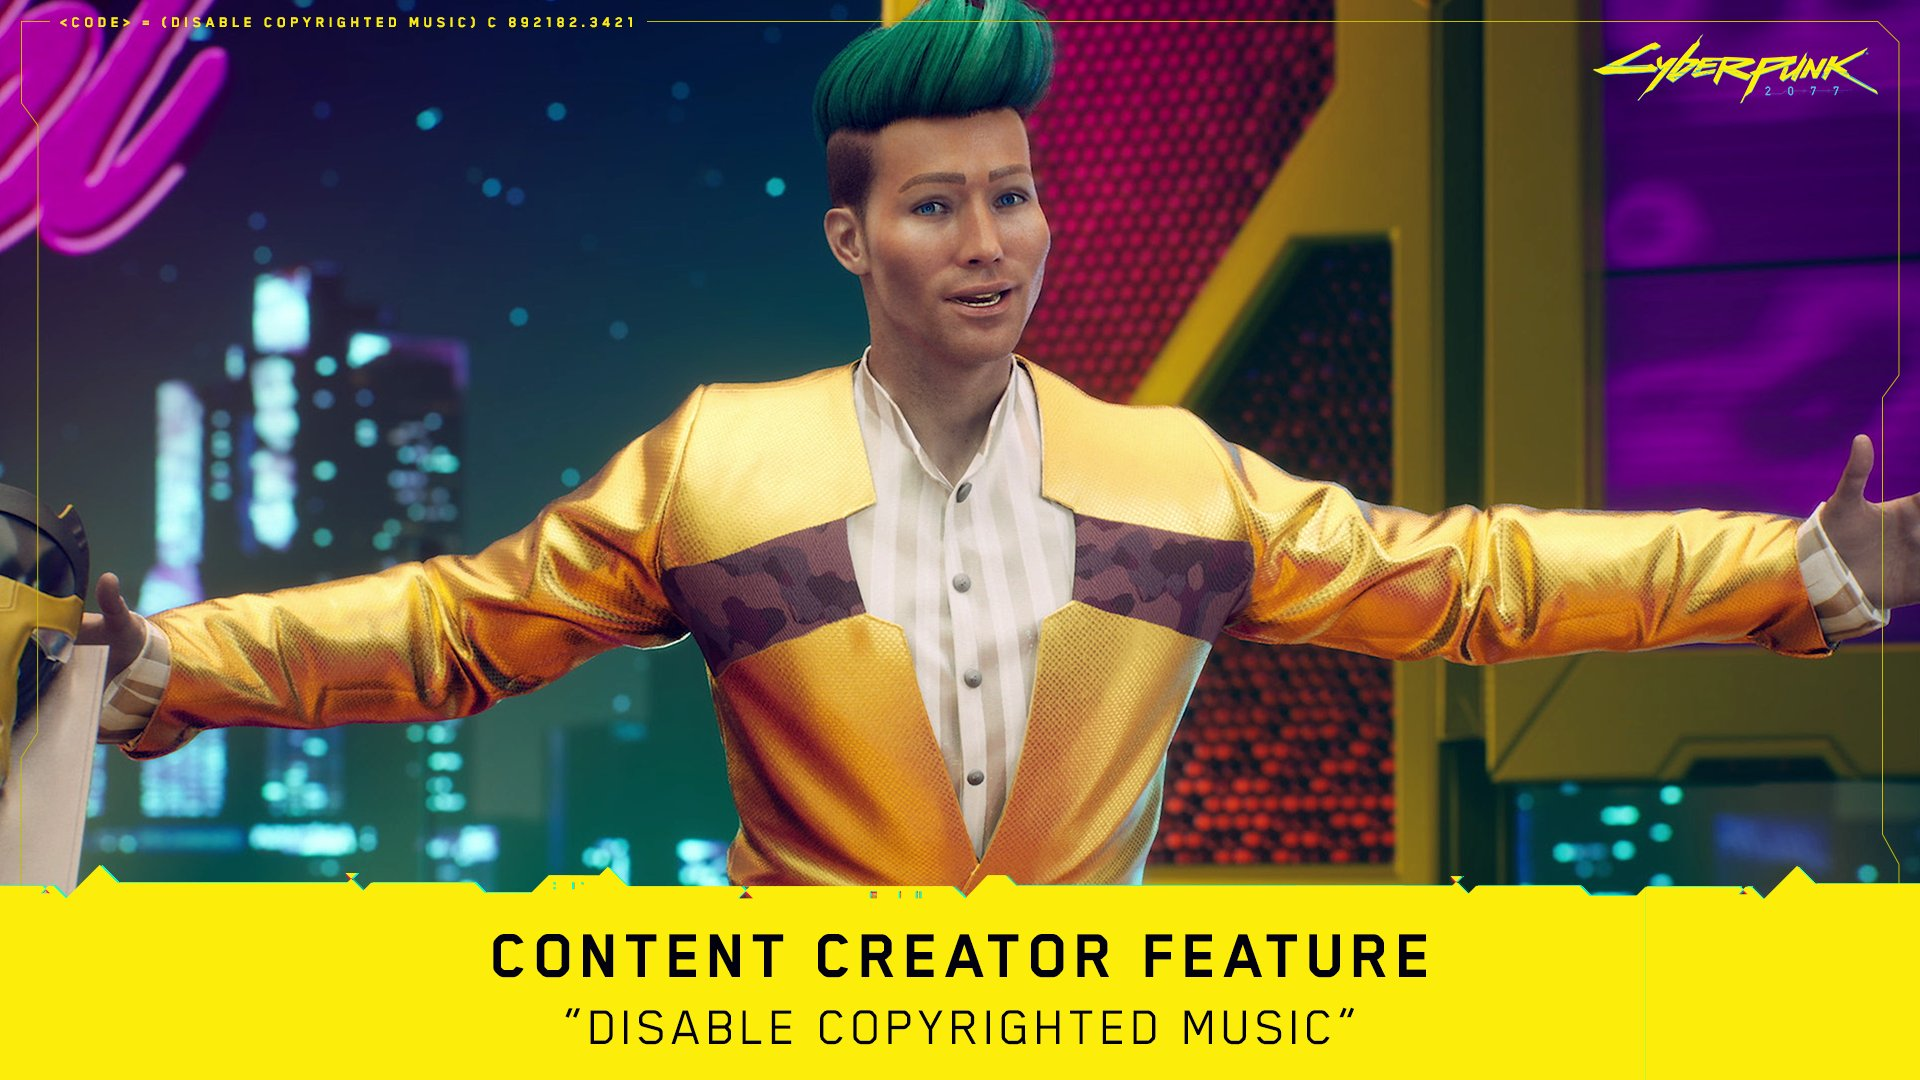 Cyberpunk 2077 stream DMCA'd for music? Email CD Projekt directly - htxt.africa